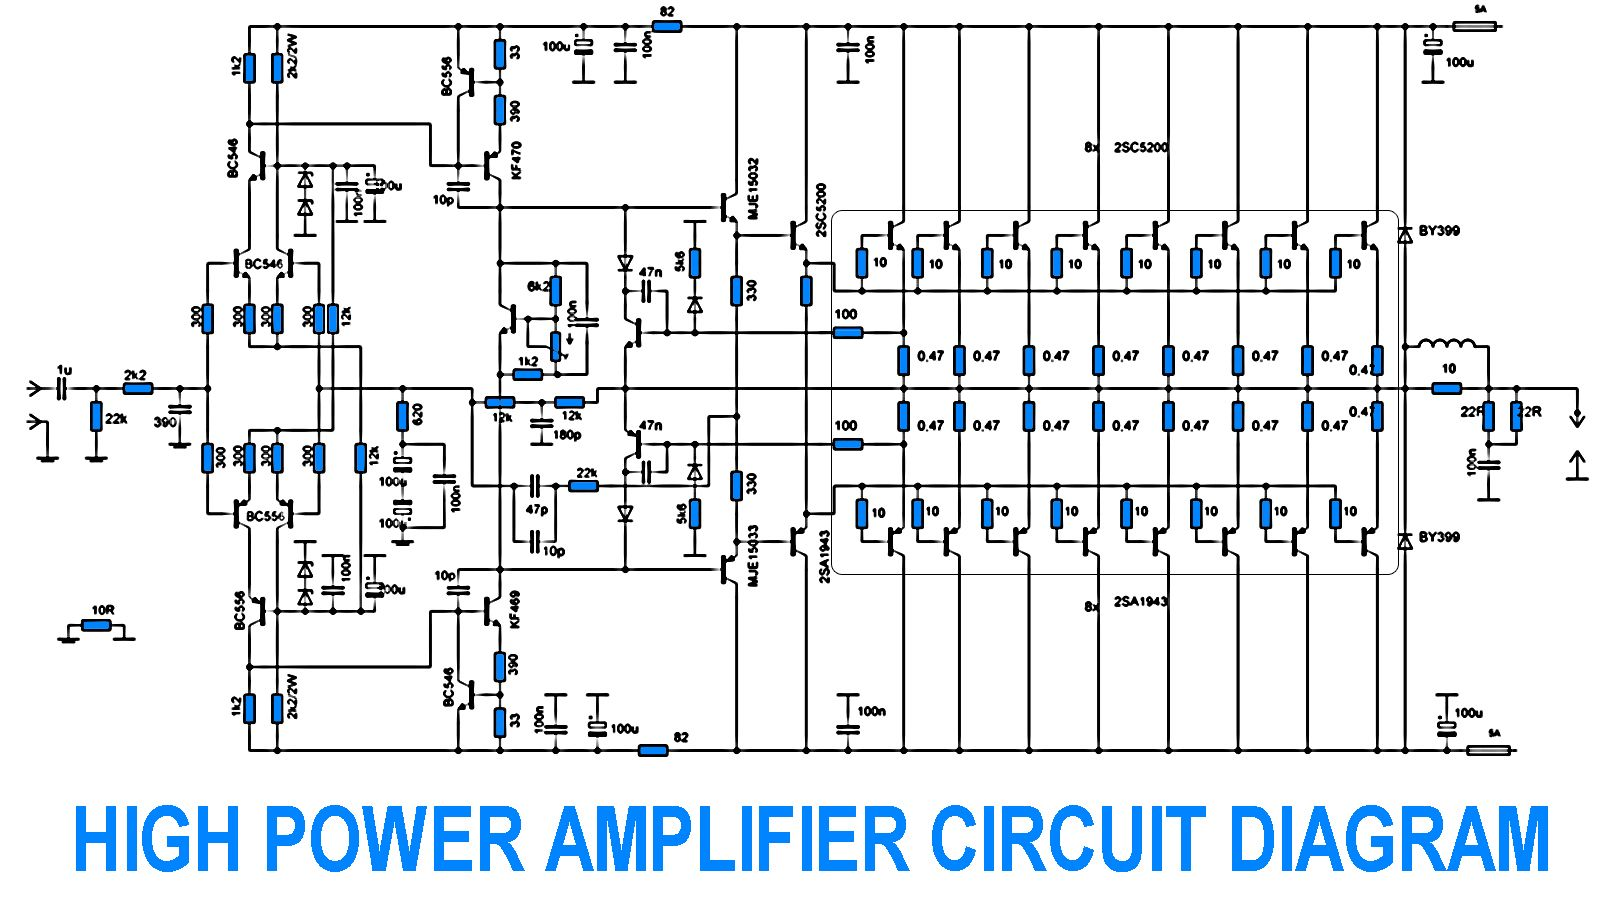 700w Power Amplifier With 2sc5200 2sa1943 Other Projects In 2018 Circuit